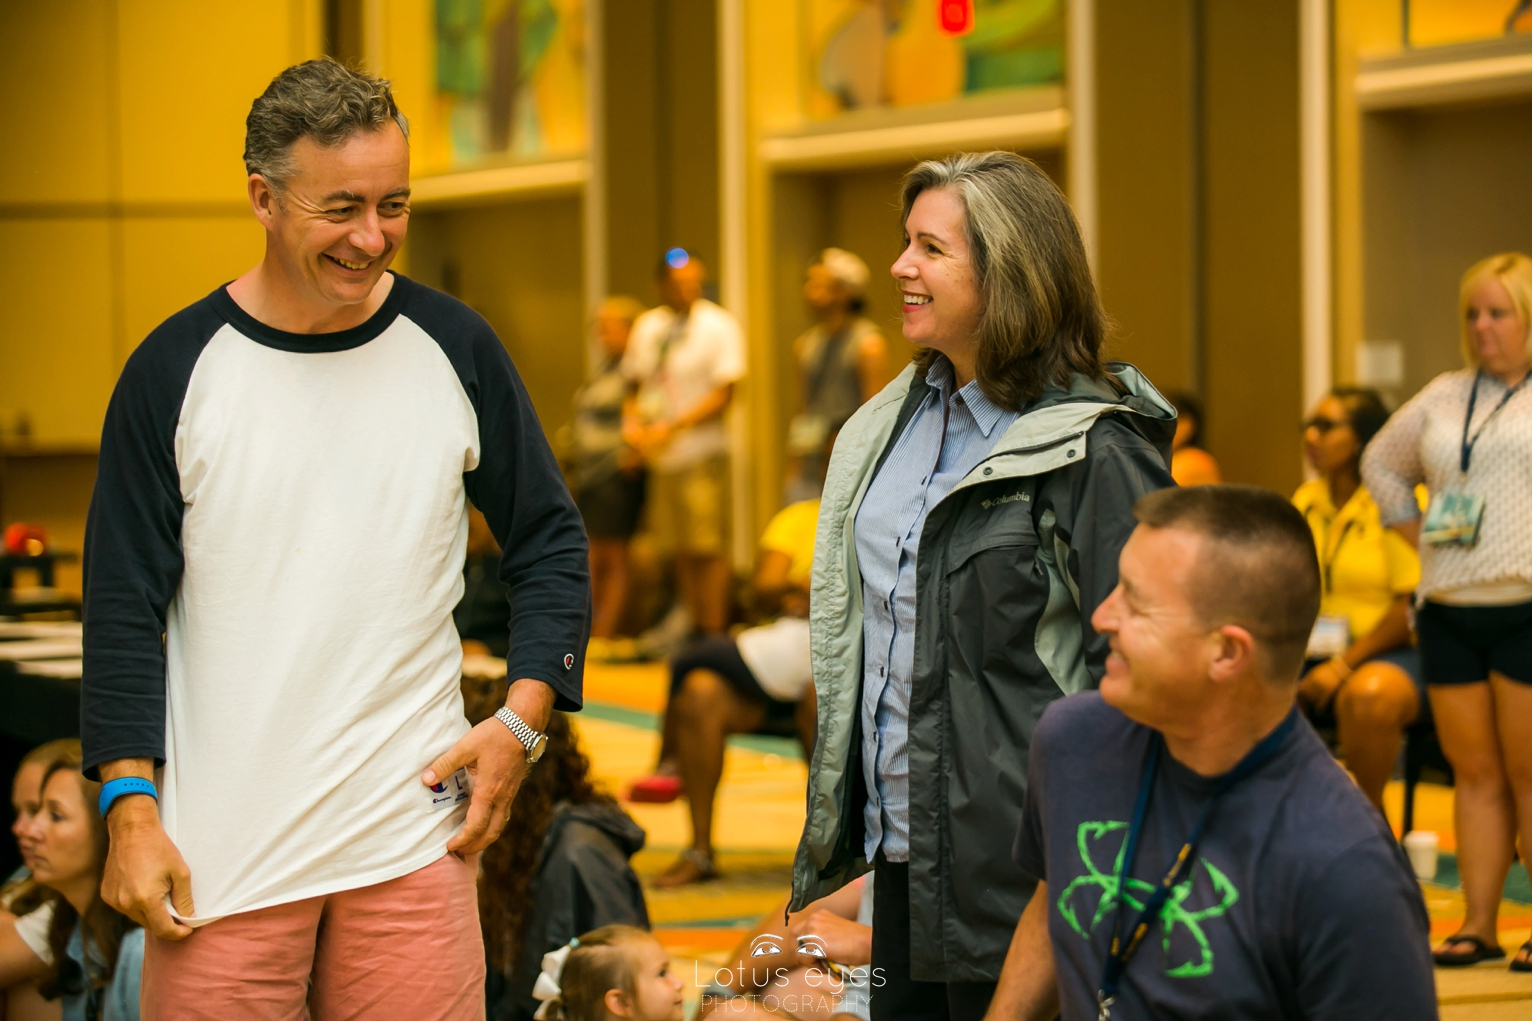 Conference photography at Disney's Swan and Dolphin Resort